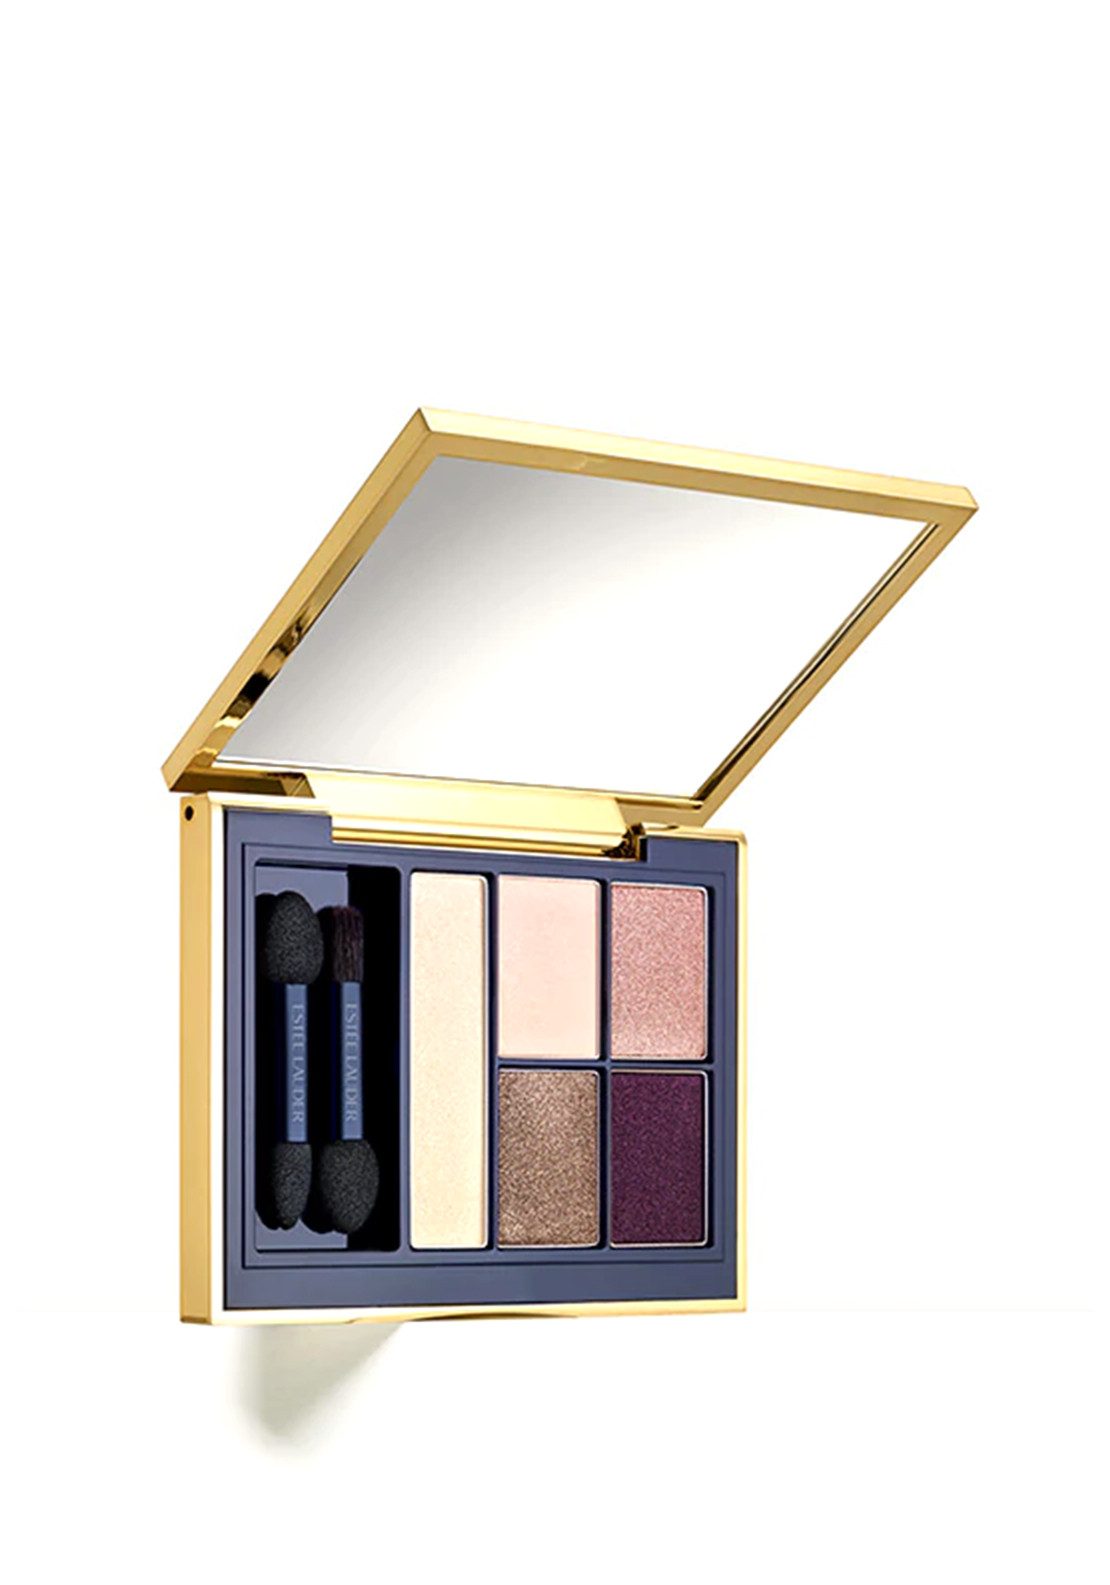 Estee Lauder Pure Colour Envy Eyeshadow Palette, Currant Desire